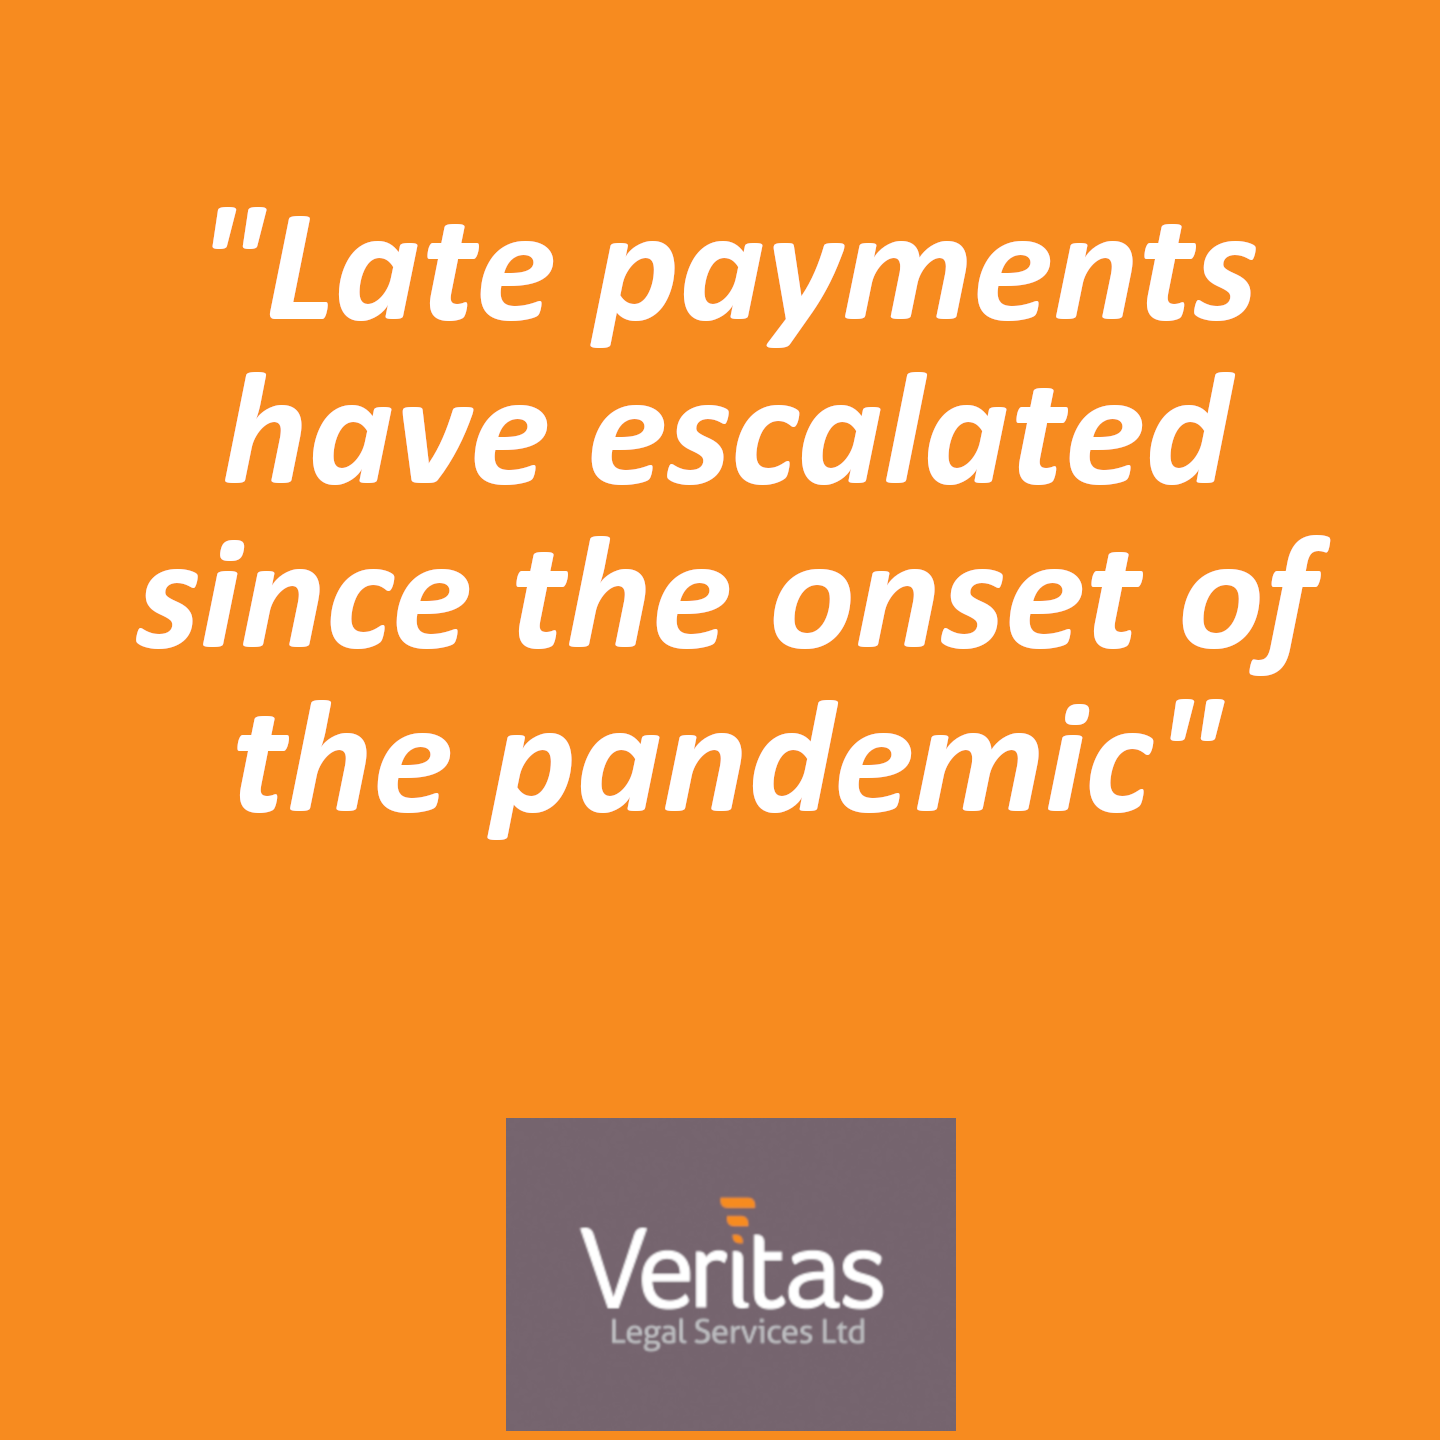 Late payments have escalated since the onset of the pandemic